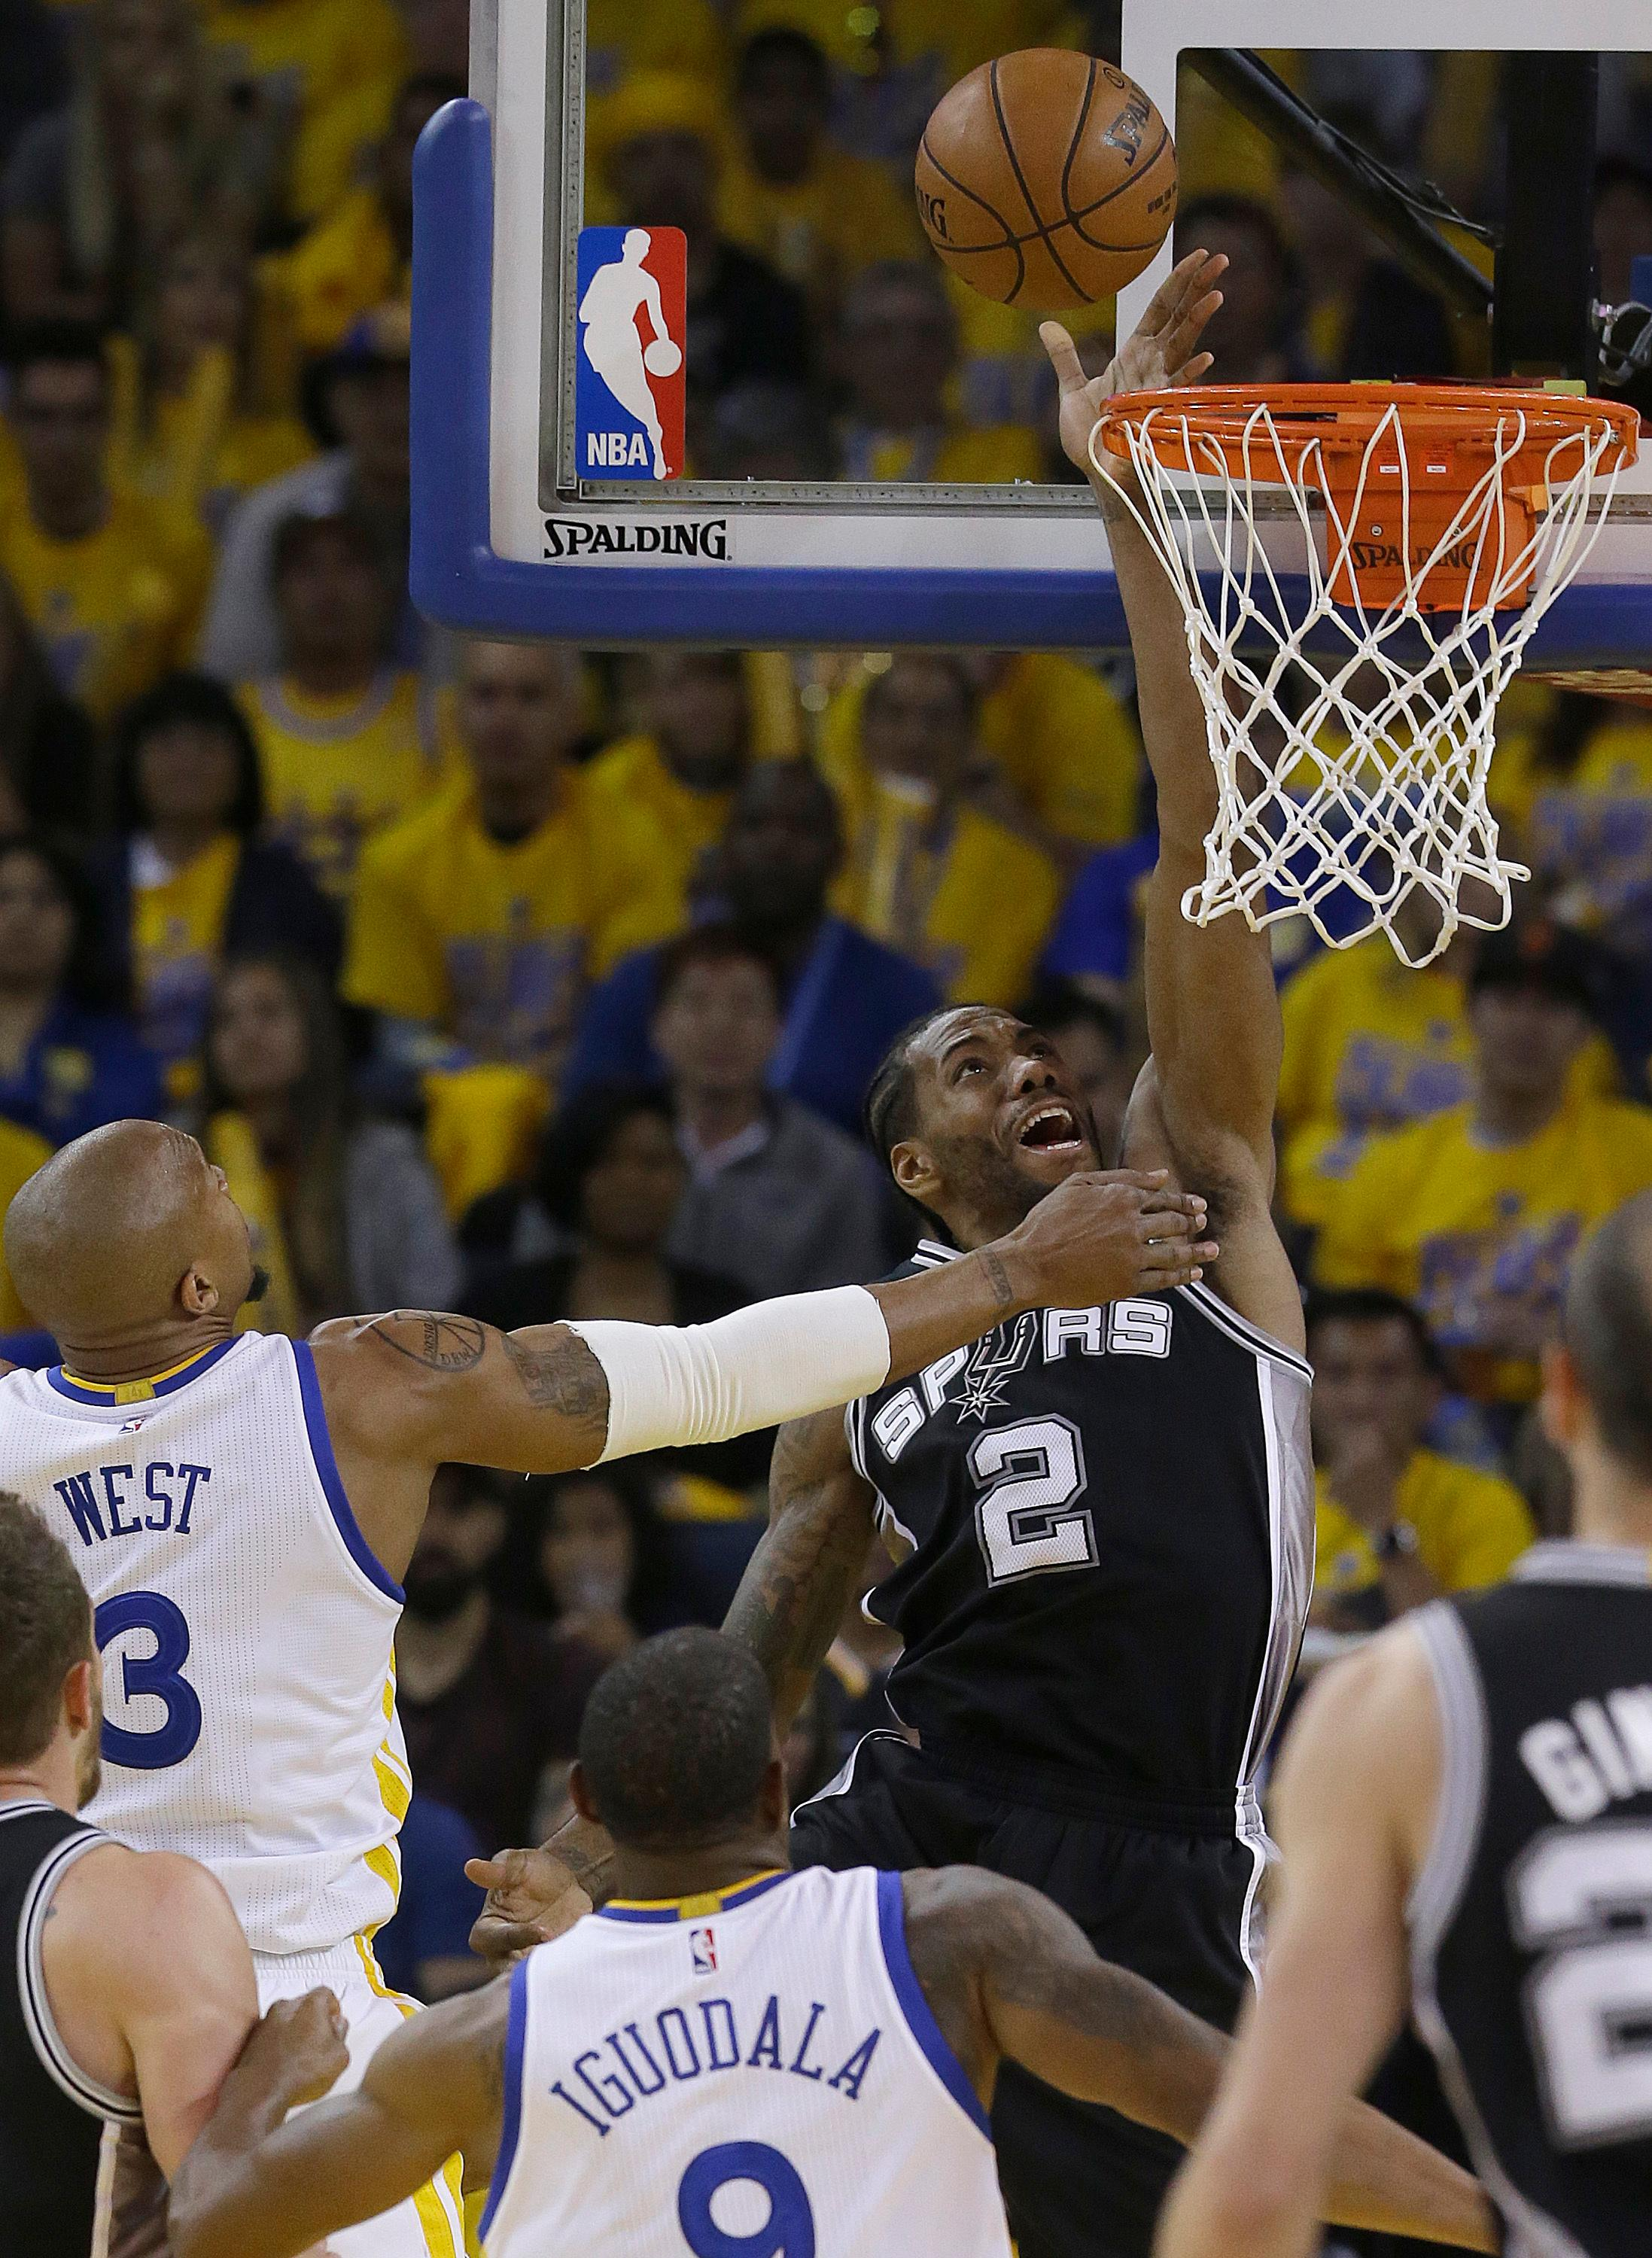 San Antonio Spurs forward Kawhi Leonard (2) scores against the Golden State Warriors during the first half of Game 1 of the NBA basketball Western Conference finals in Oakland, Calif., Sunday, May 14, 2017. (AP Photo/Jeff Chiu)